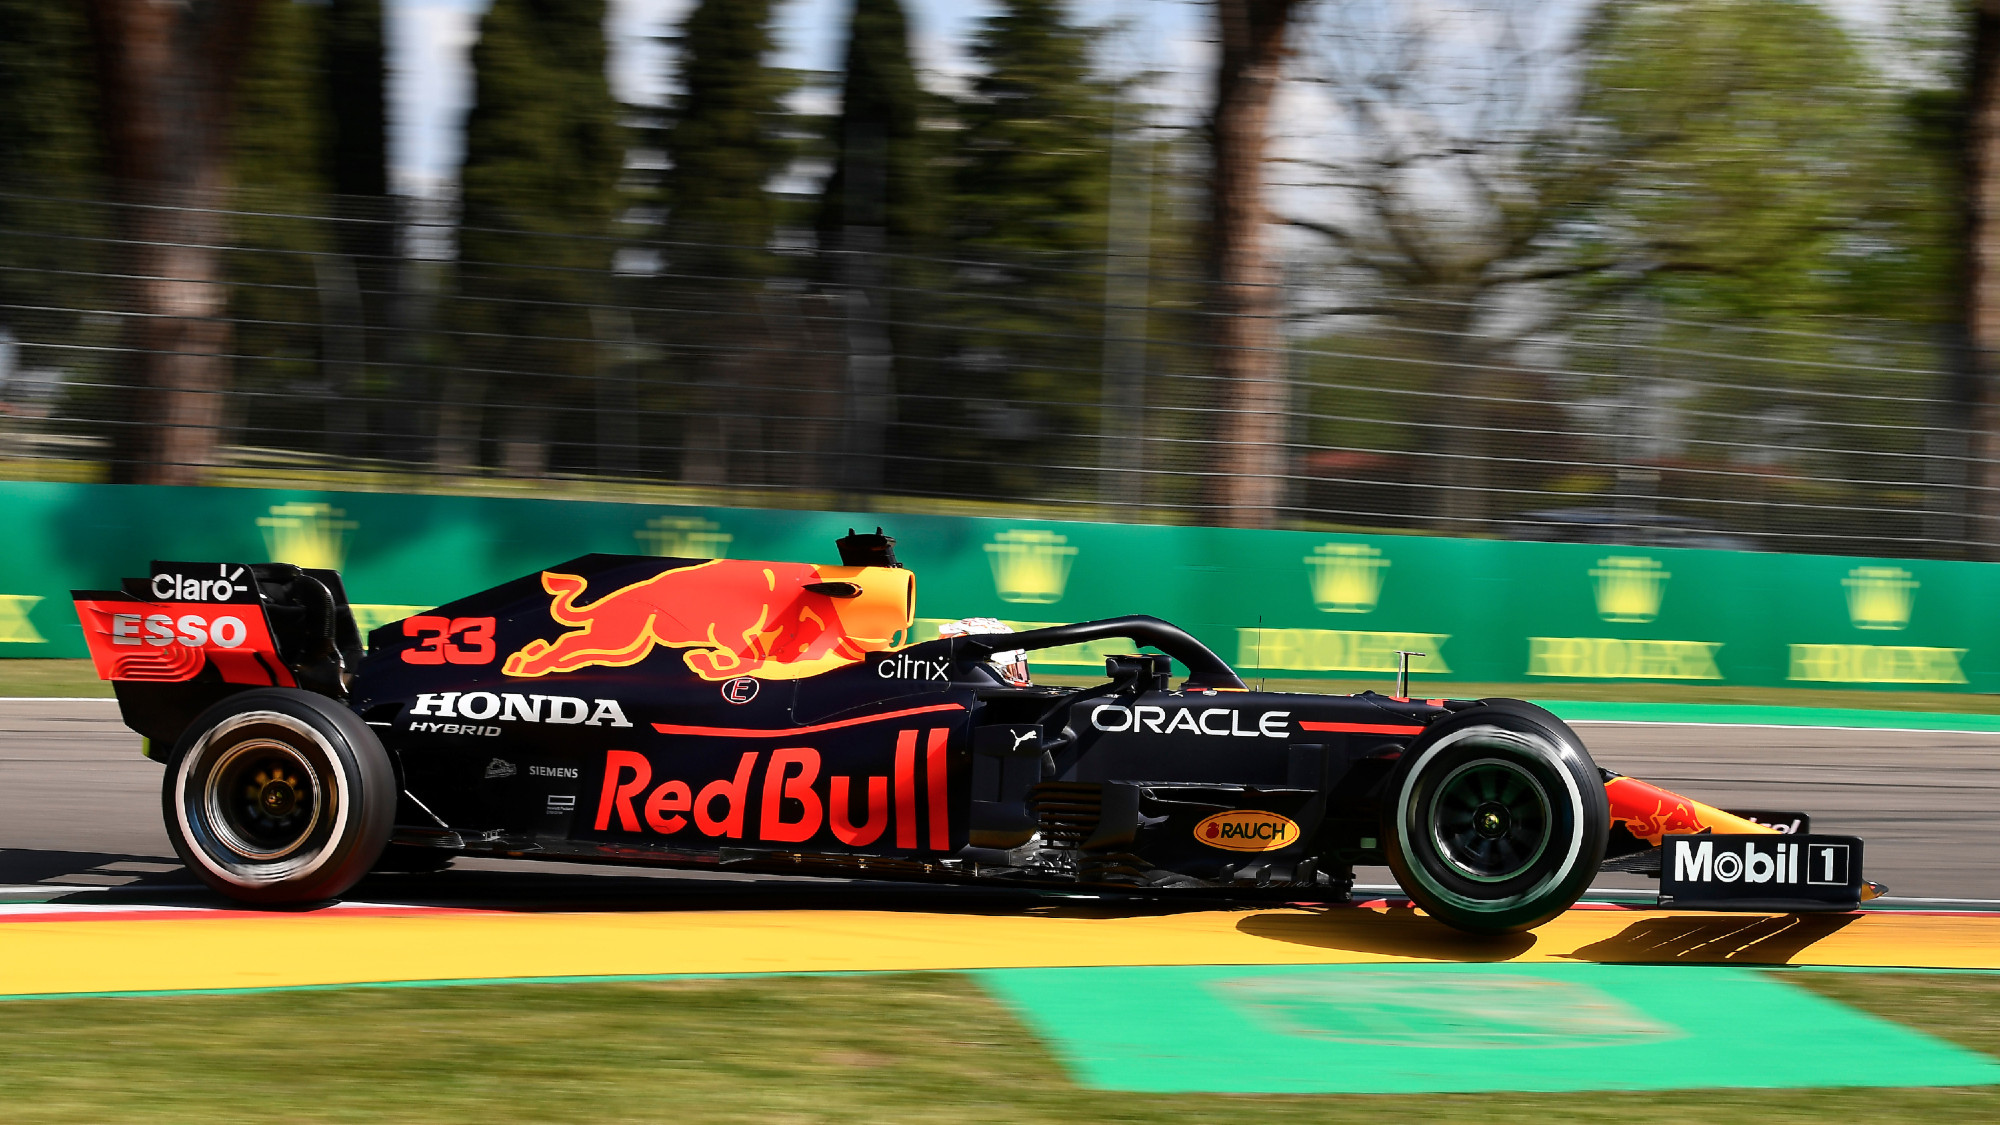 2021 Emilia Romagna Grand Prix practice round-up: Verstappen fires warning shot ahead of qualifying